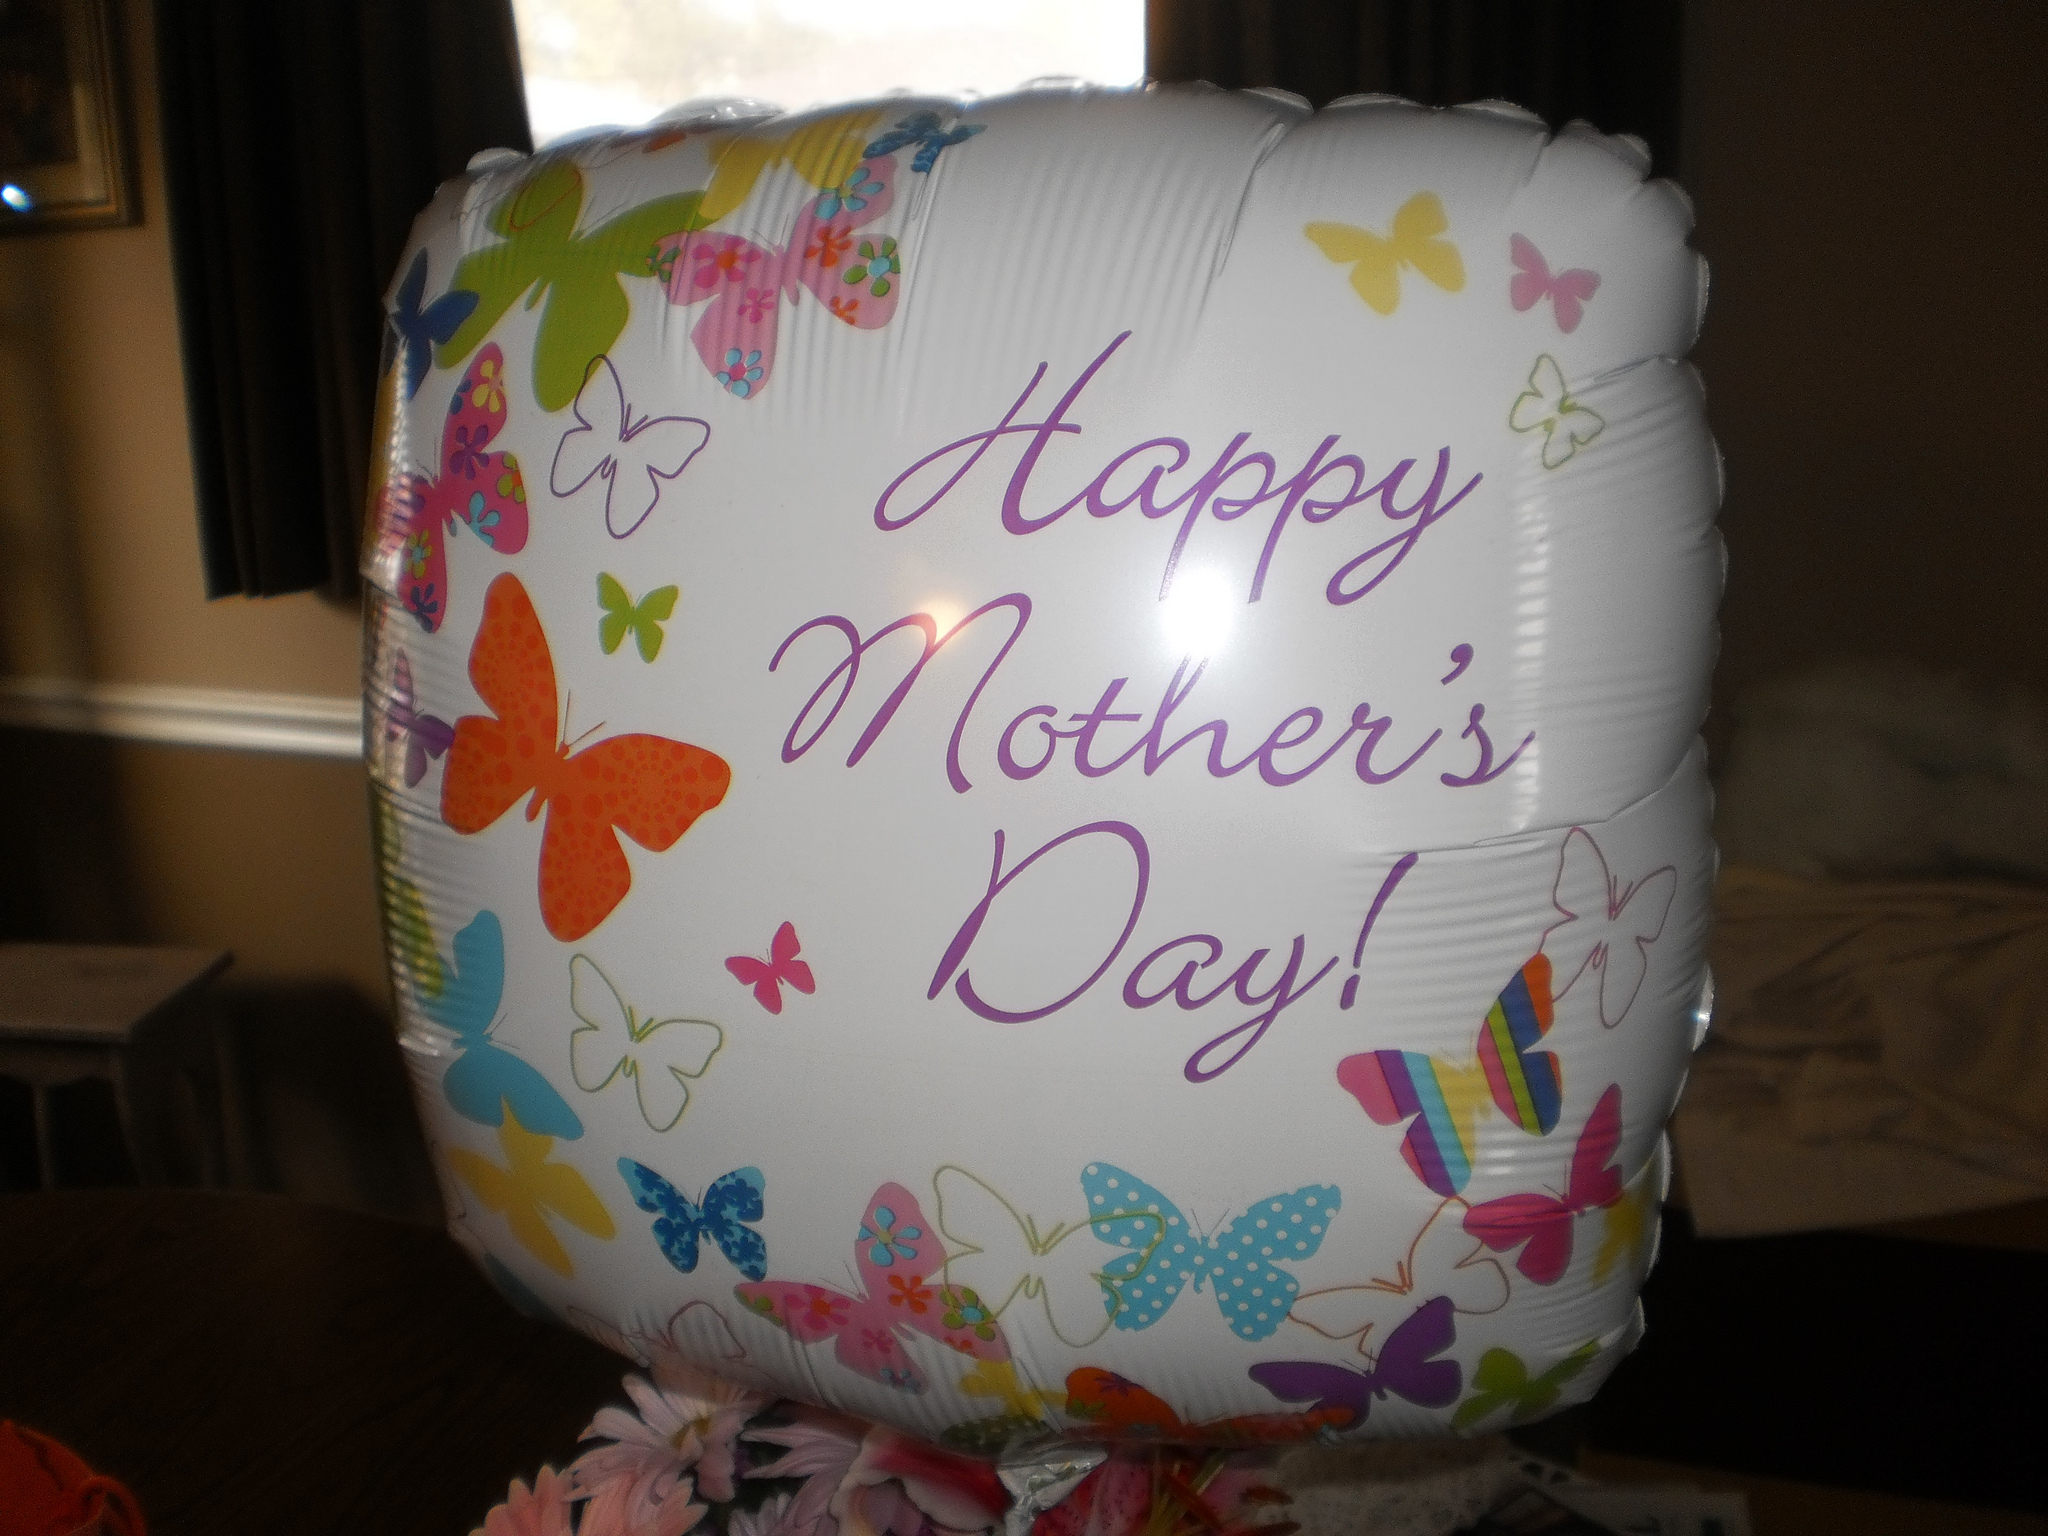 Mom Day points to bigger issue: the biblical treatment of women